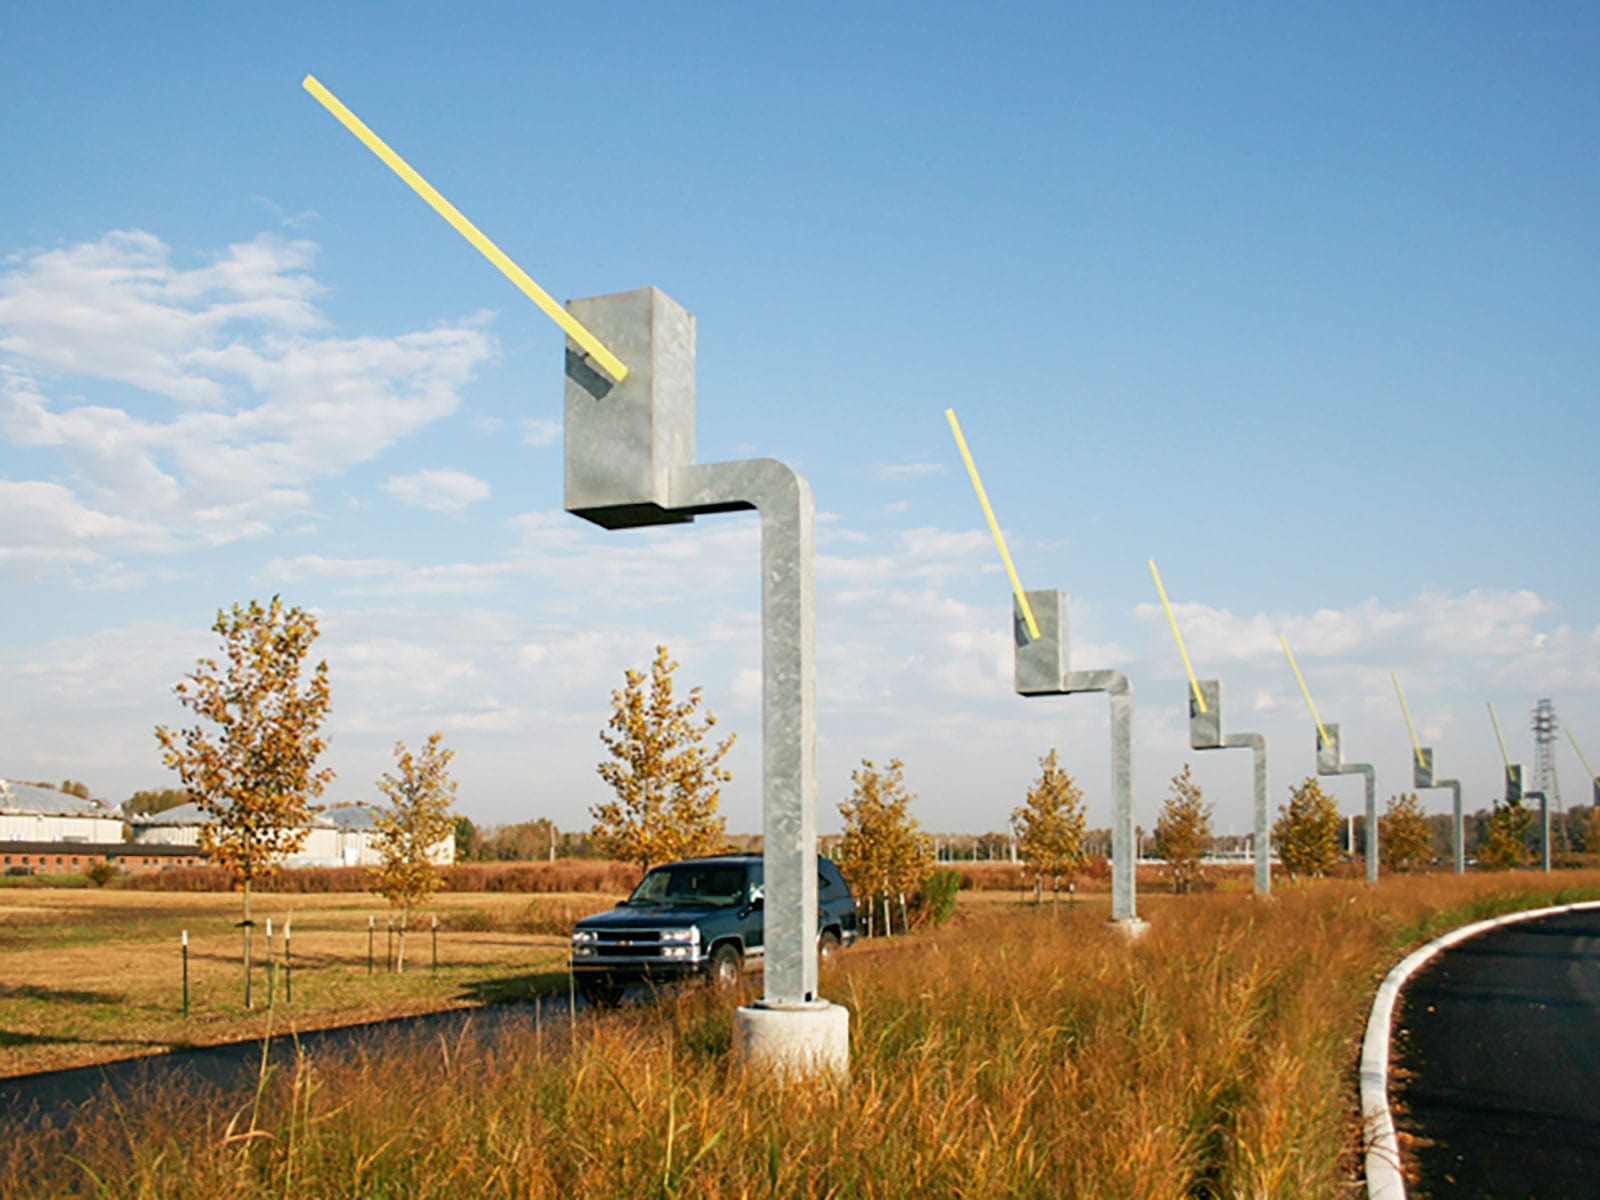 Seven Sentinels kinetic sculpture. Each of the parking gate sculptures salute exiting drivers.